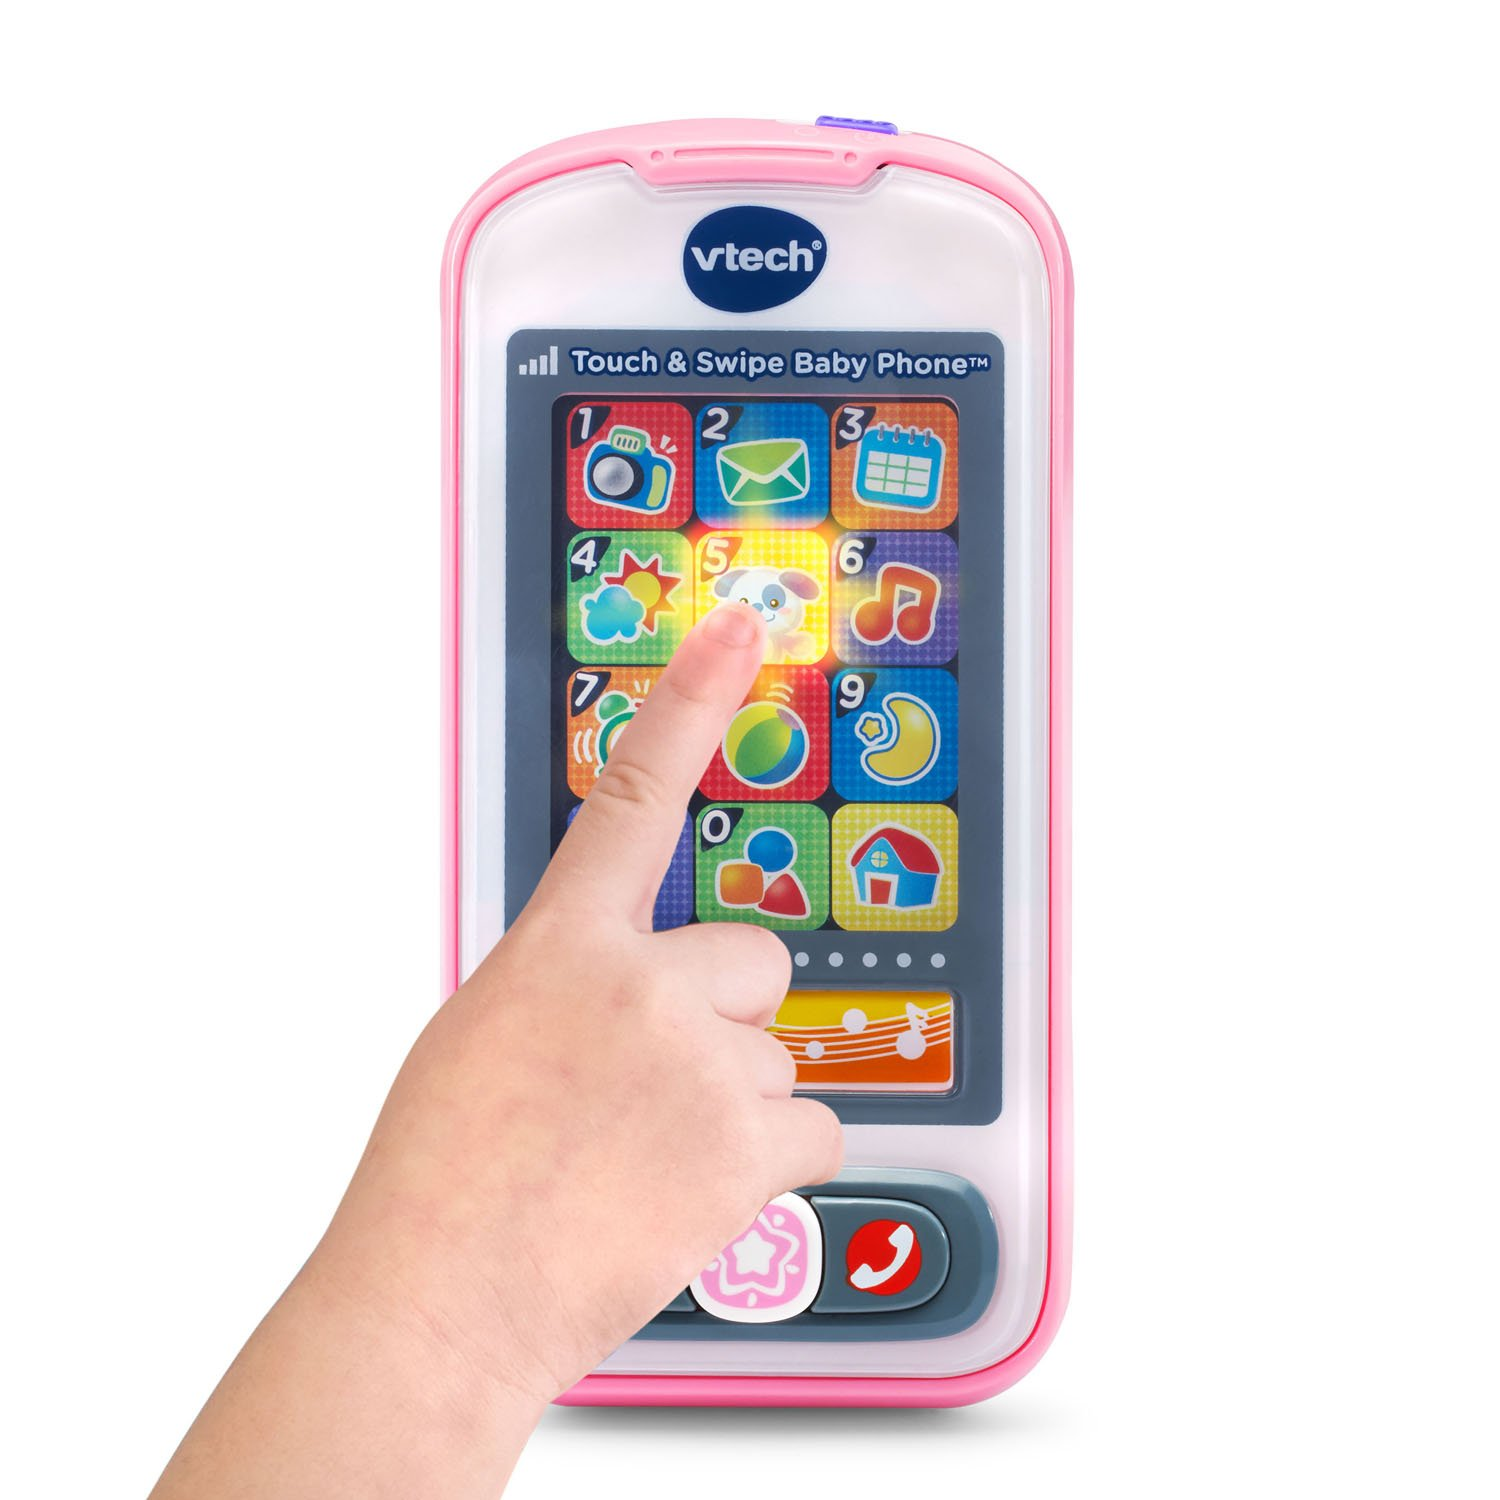 VTech Touch and Swipe Baby Phone, Pink by VTech (Image #2)